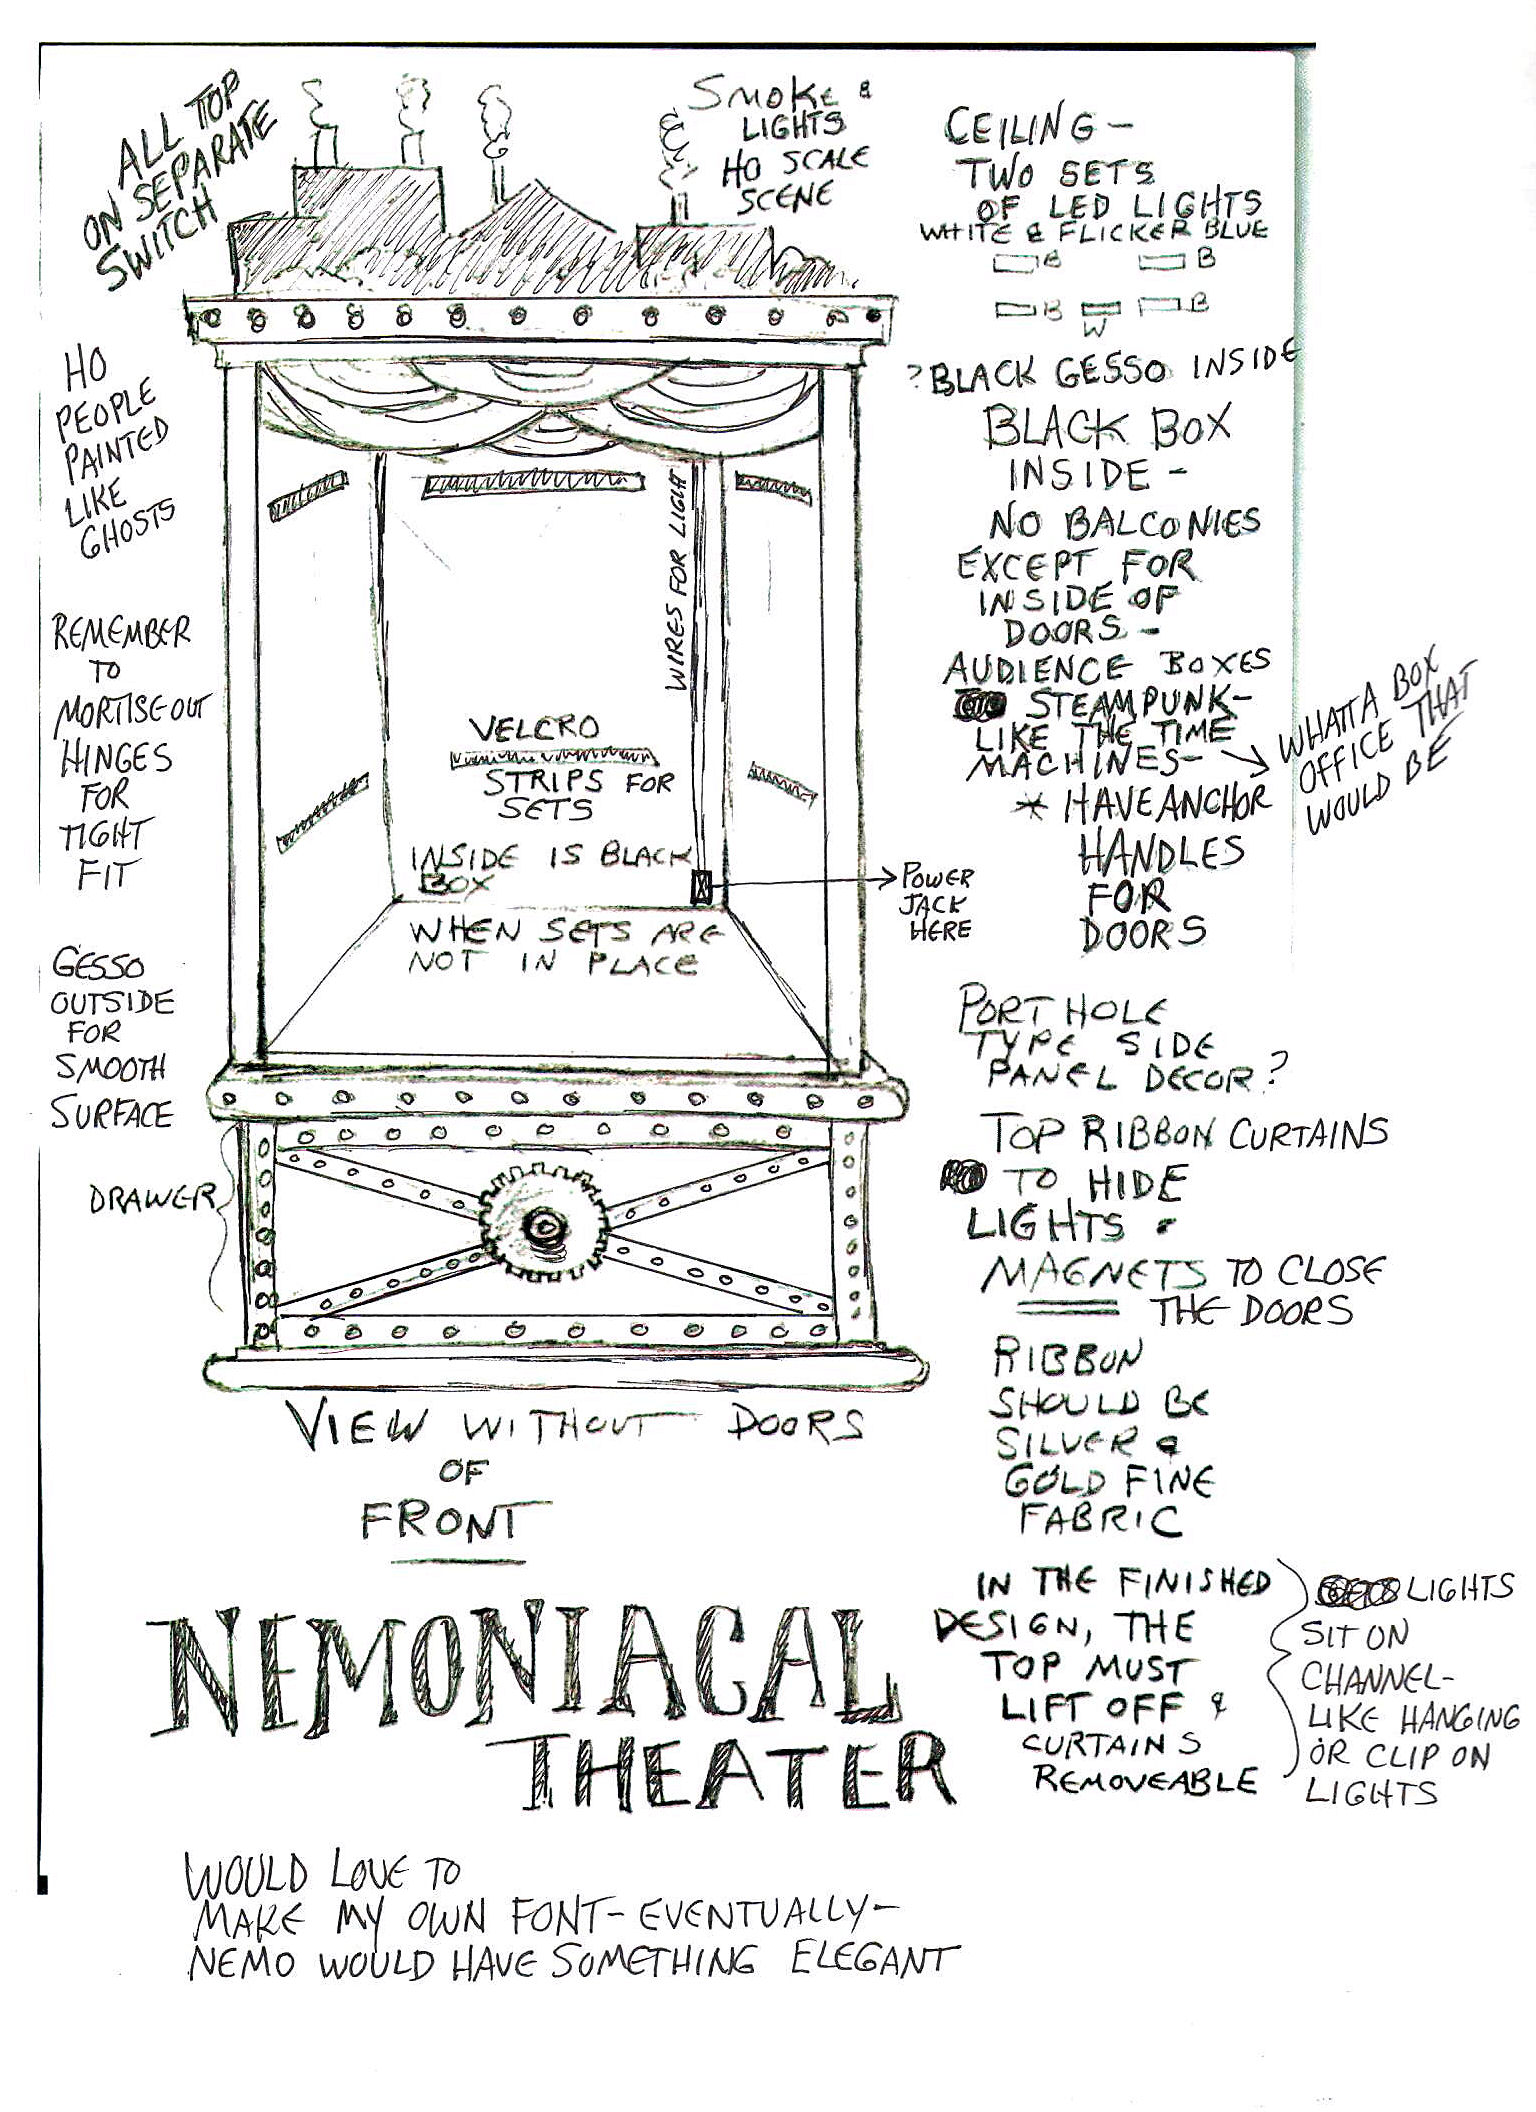 NEMOniacal Front View